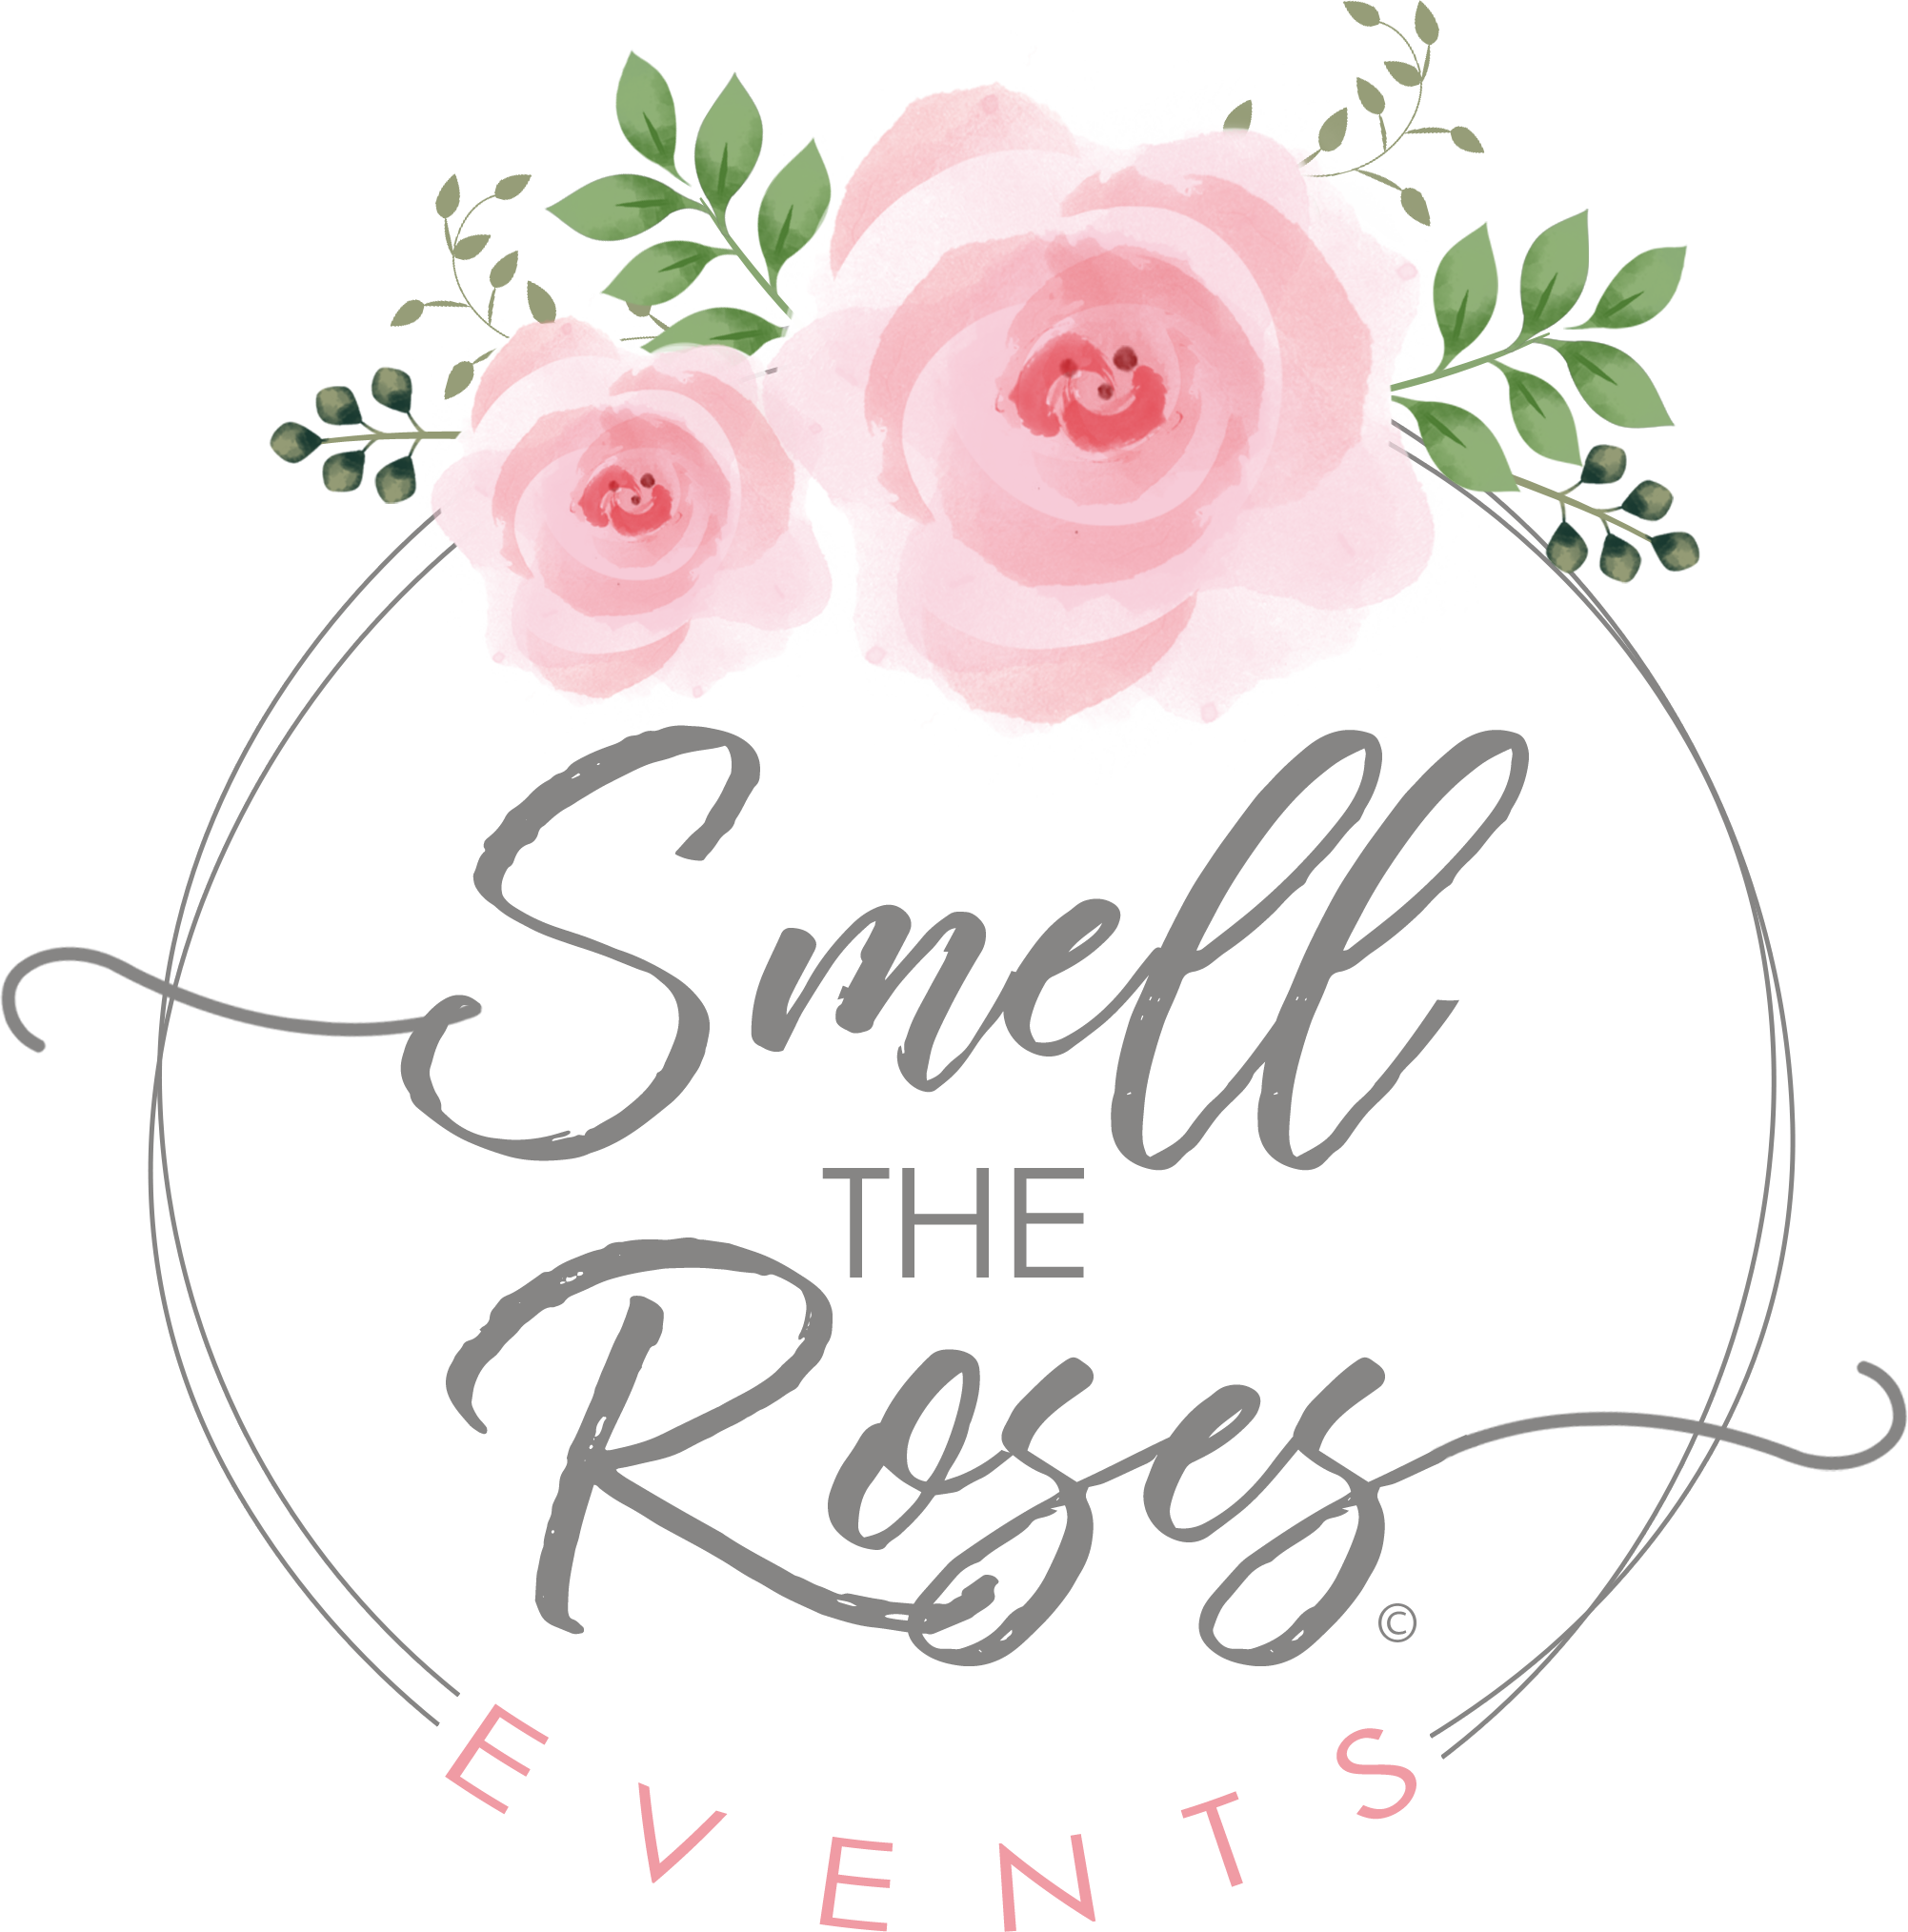 Smell clipart smell the rose. Roses events look book